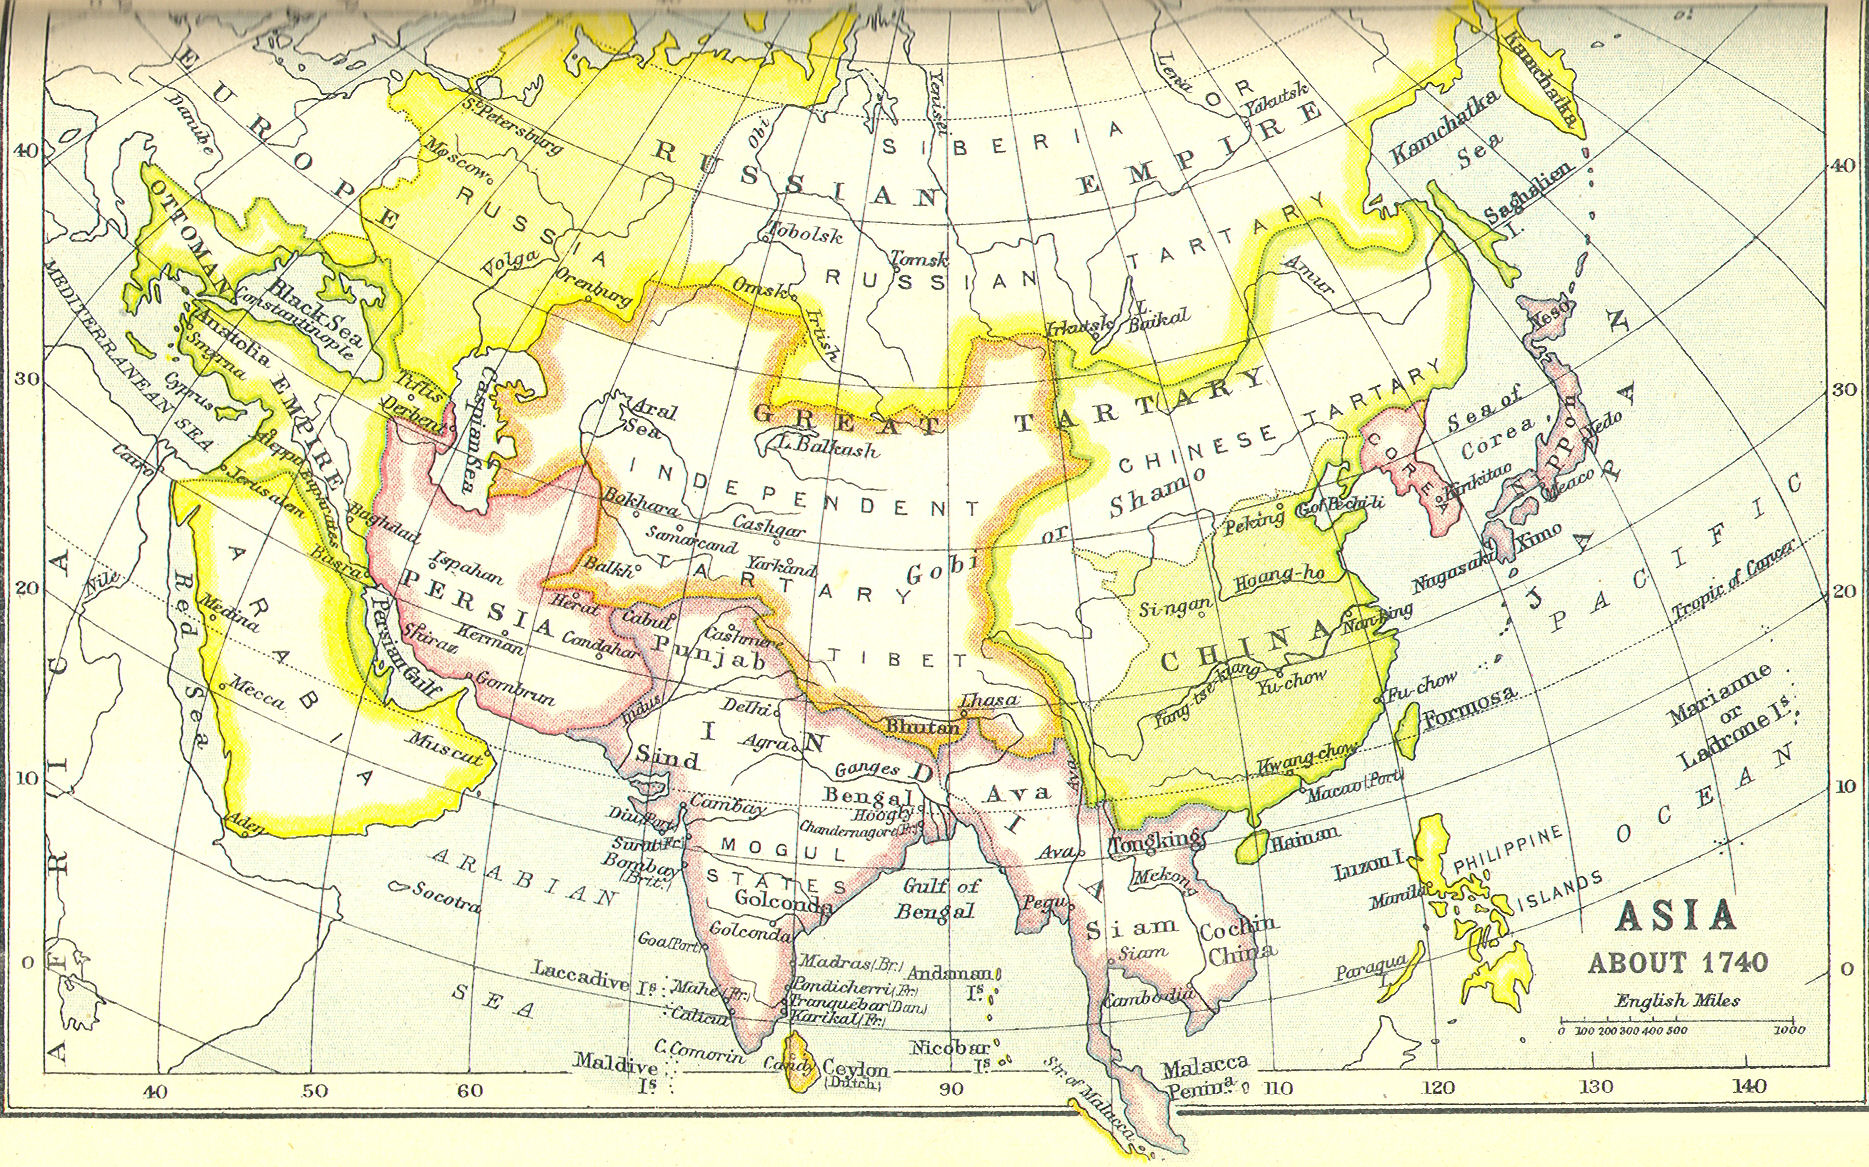 http://www.heritage-history.com/maps/lhasia/asia017.jpg